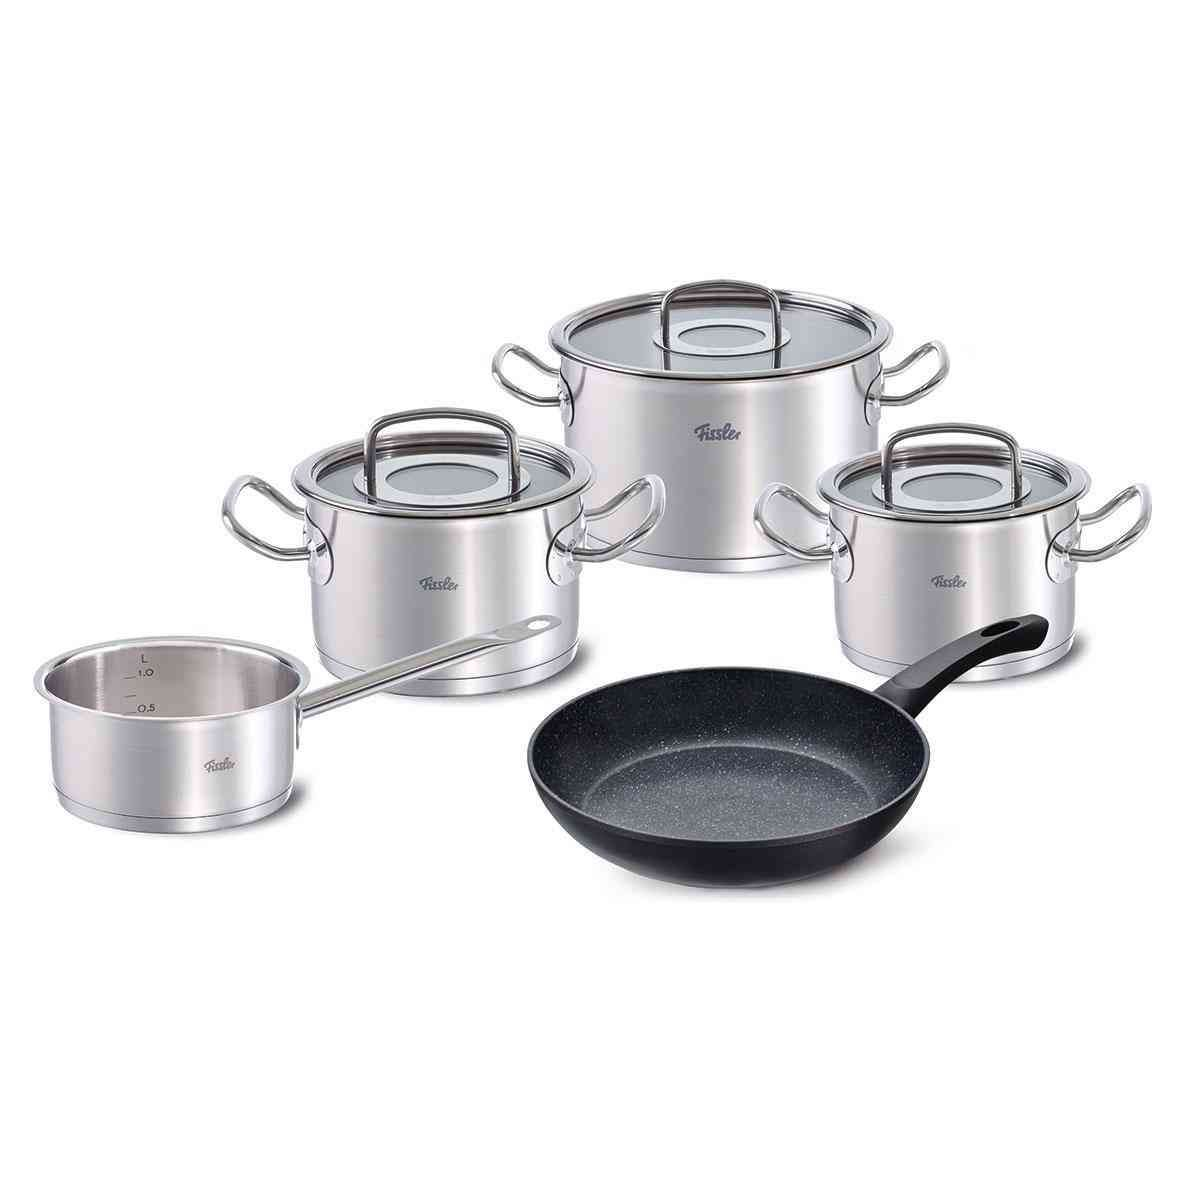 Original Profi Collection Topf Set 5 Tlg Mit Pfanne Fissler Shop Fissler